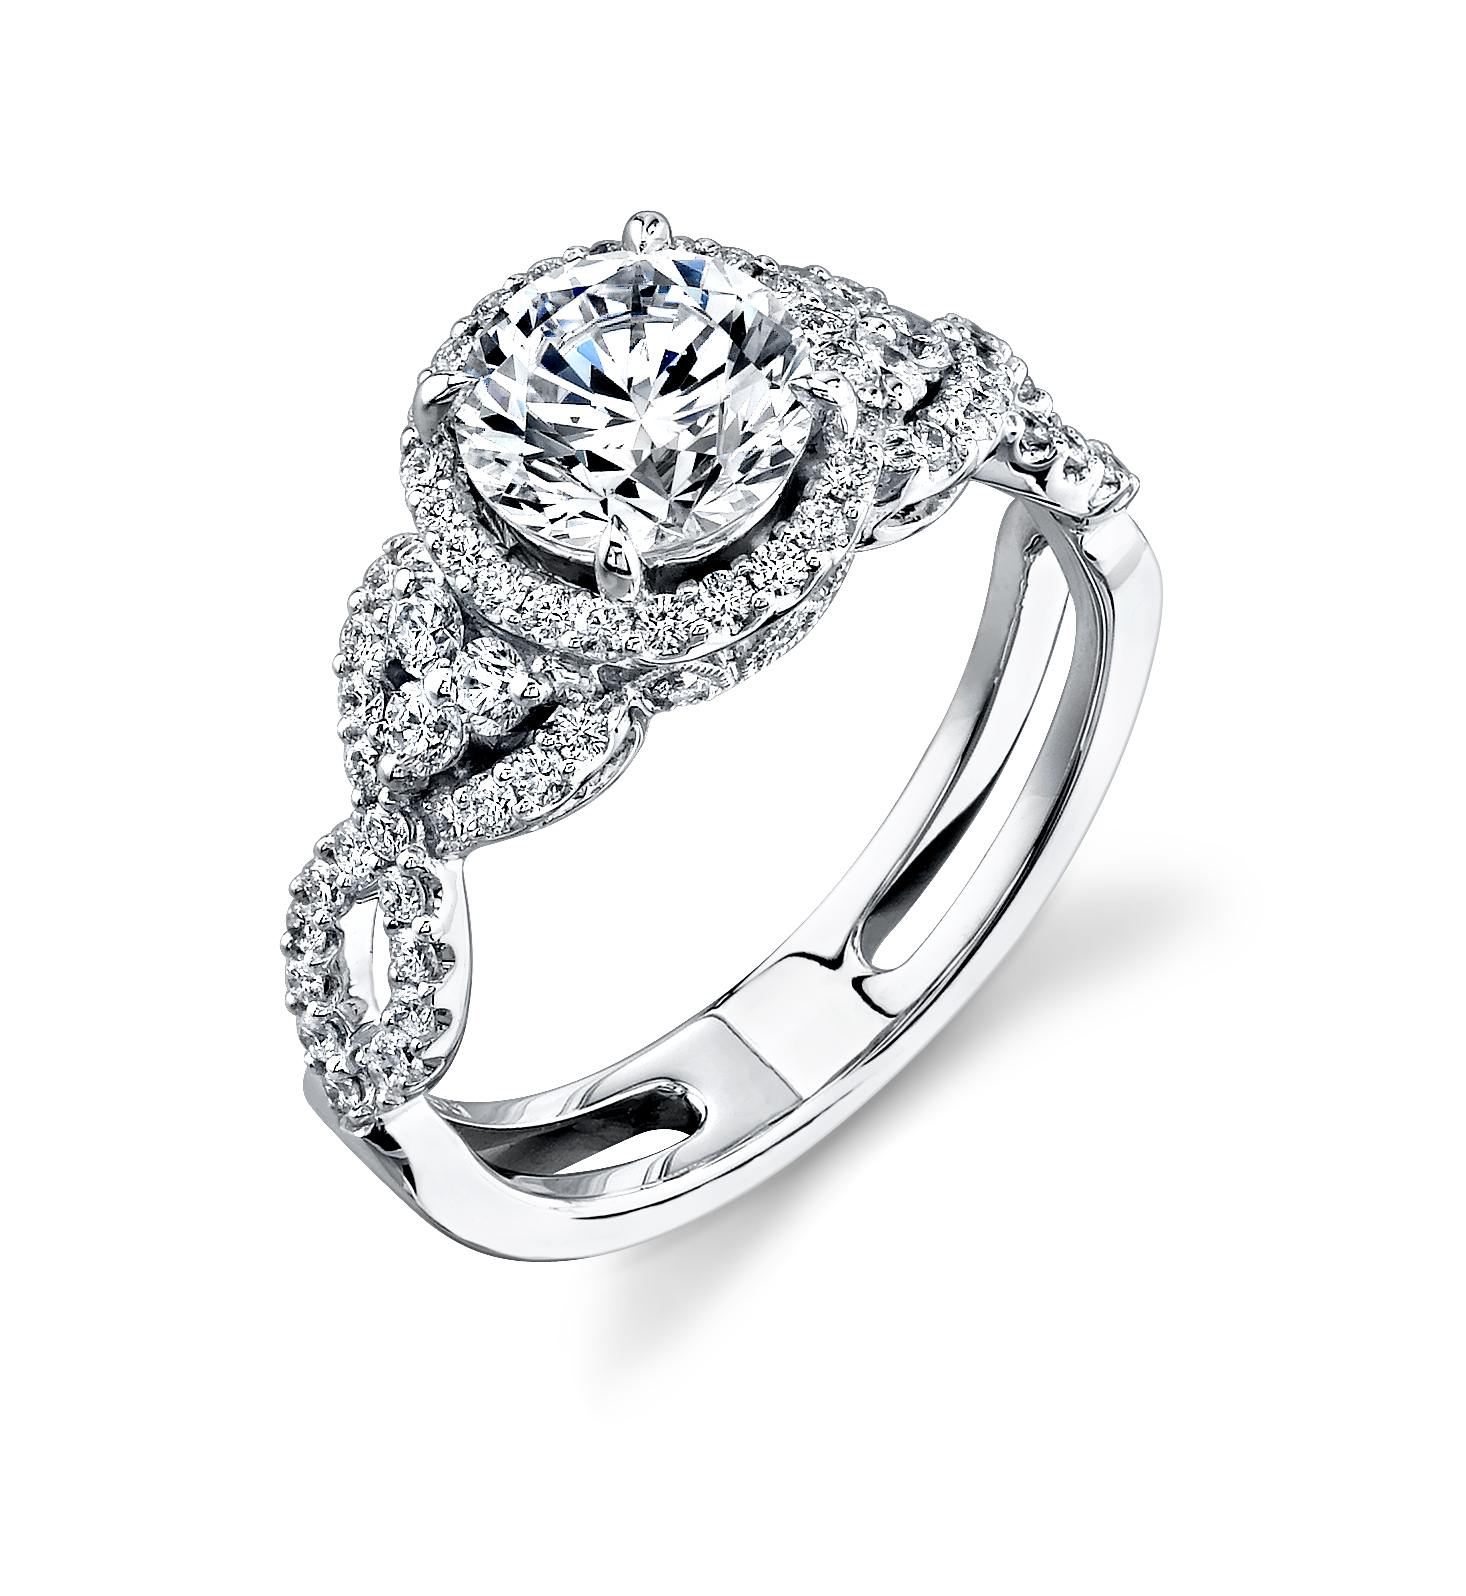 halo style wedding rings vintage wedding ring sets Vintage Style Simon G Halo Engagement Ring with Micro Pave